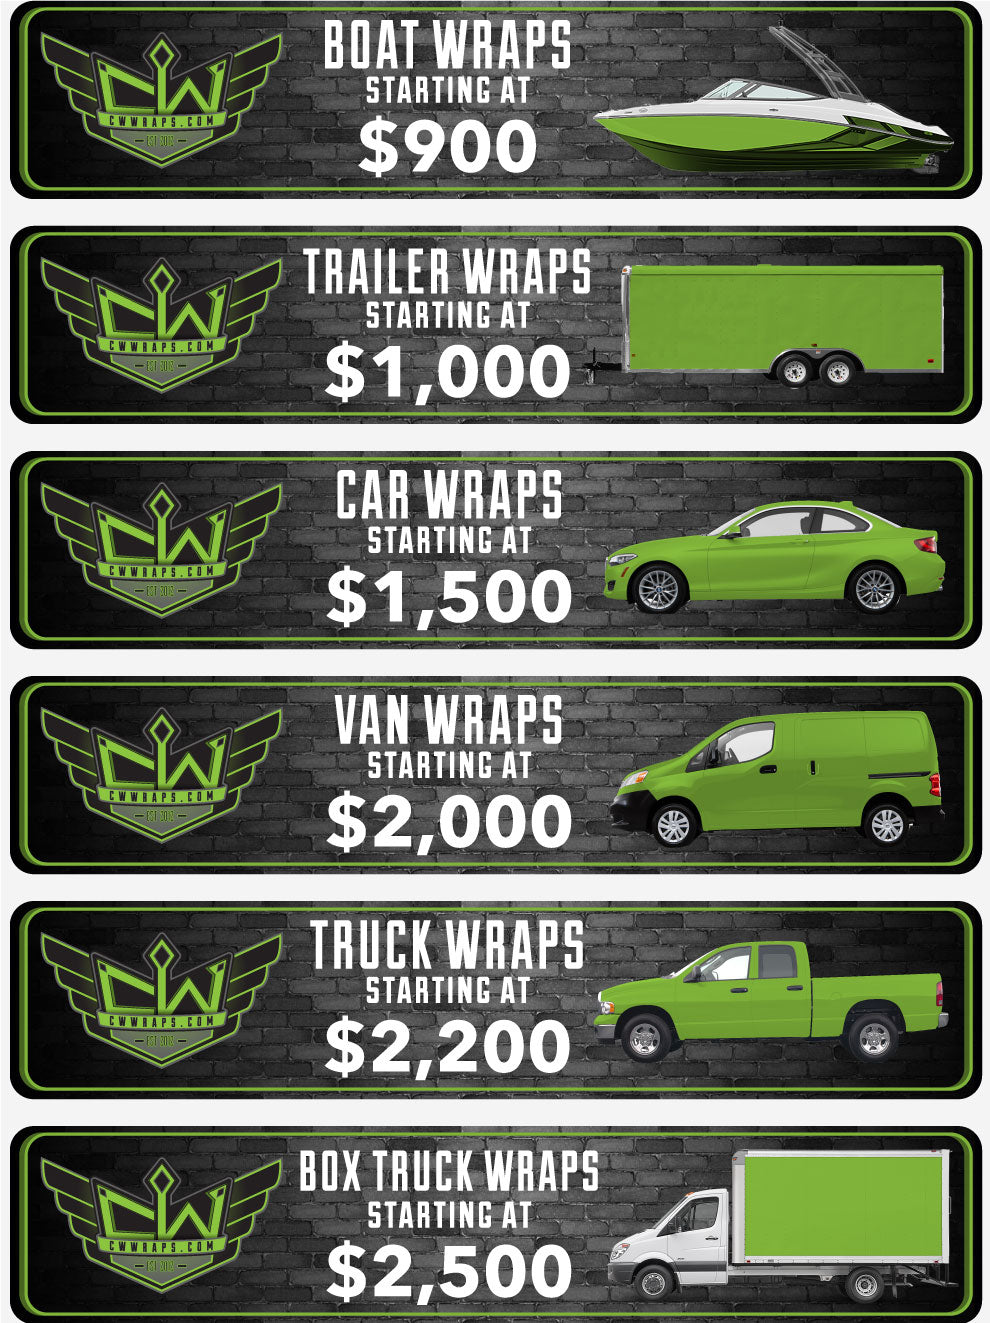 cw vinyl vehicle wraps starting at $900